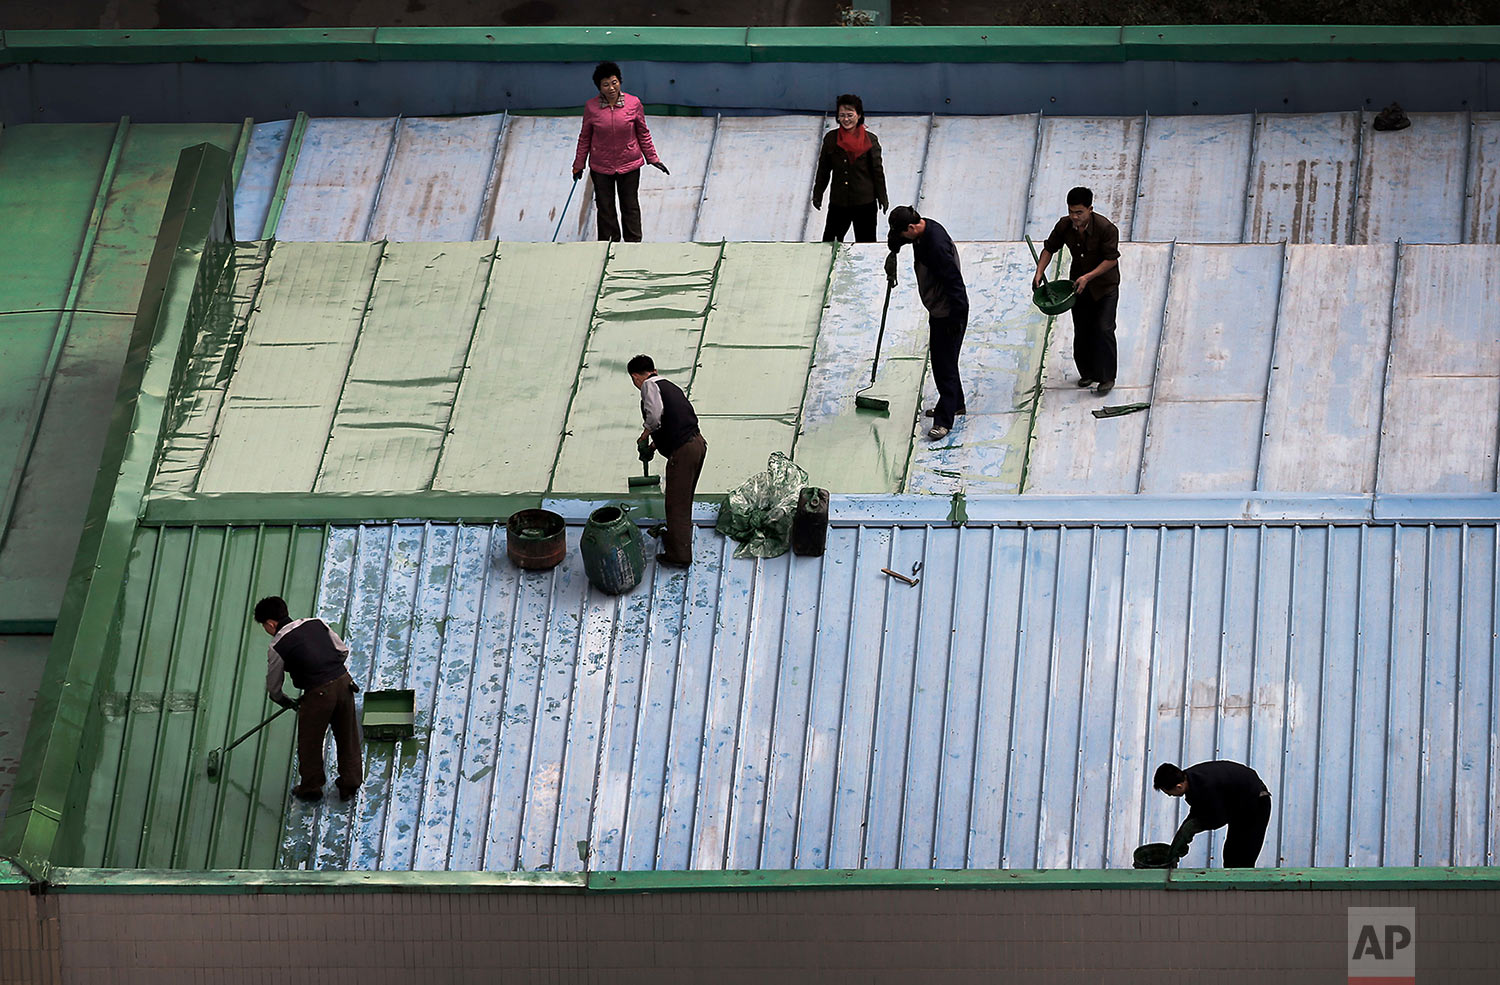 Men and woman paint the roof of a restaurant in downtown Pyongyang, North Korea, on Oct. 25, 2014. (AP Photo/Wong Maye-E)